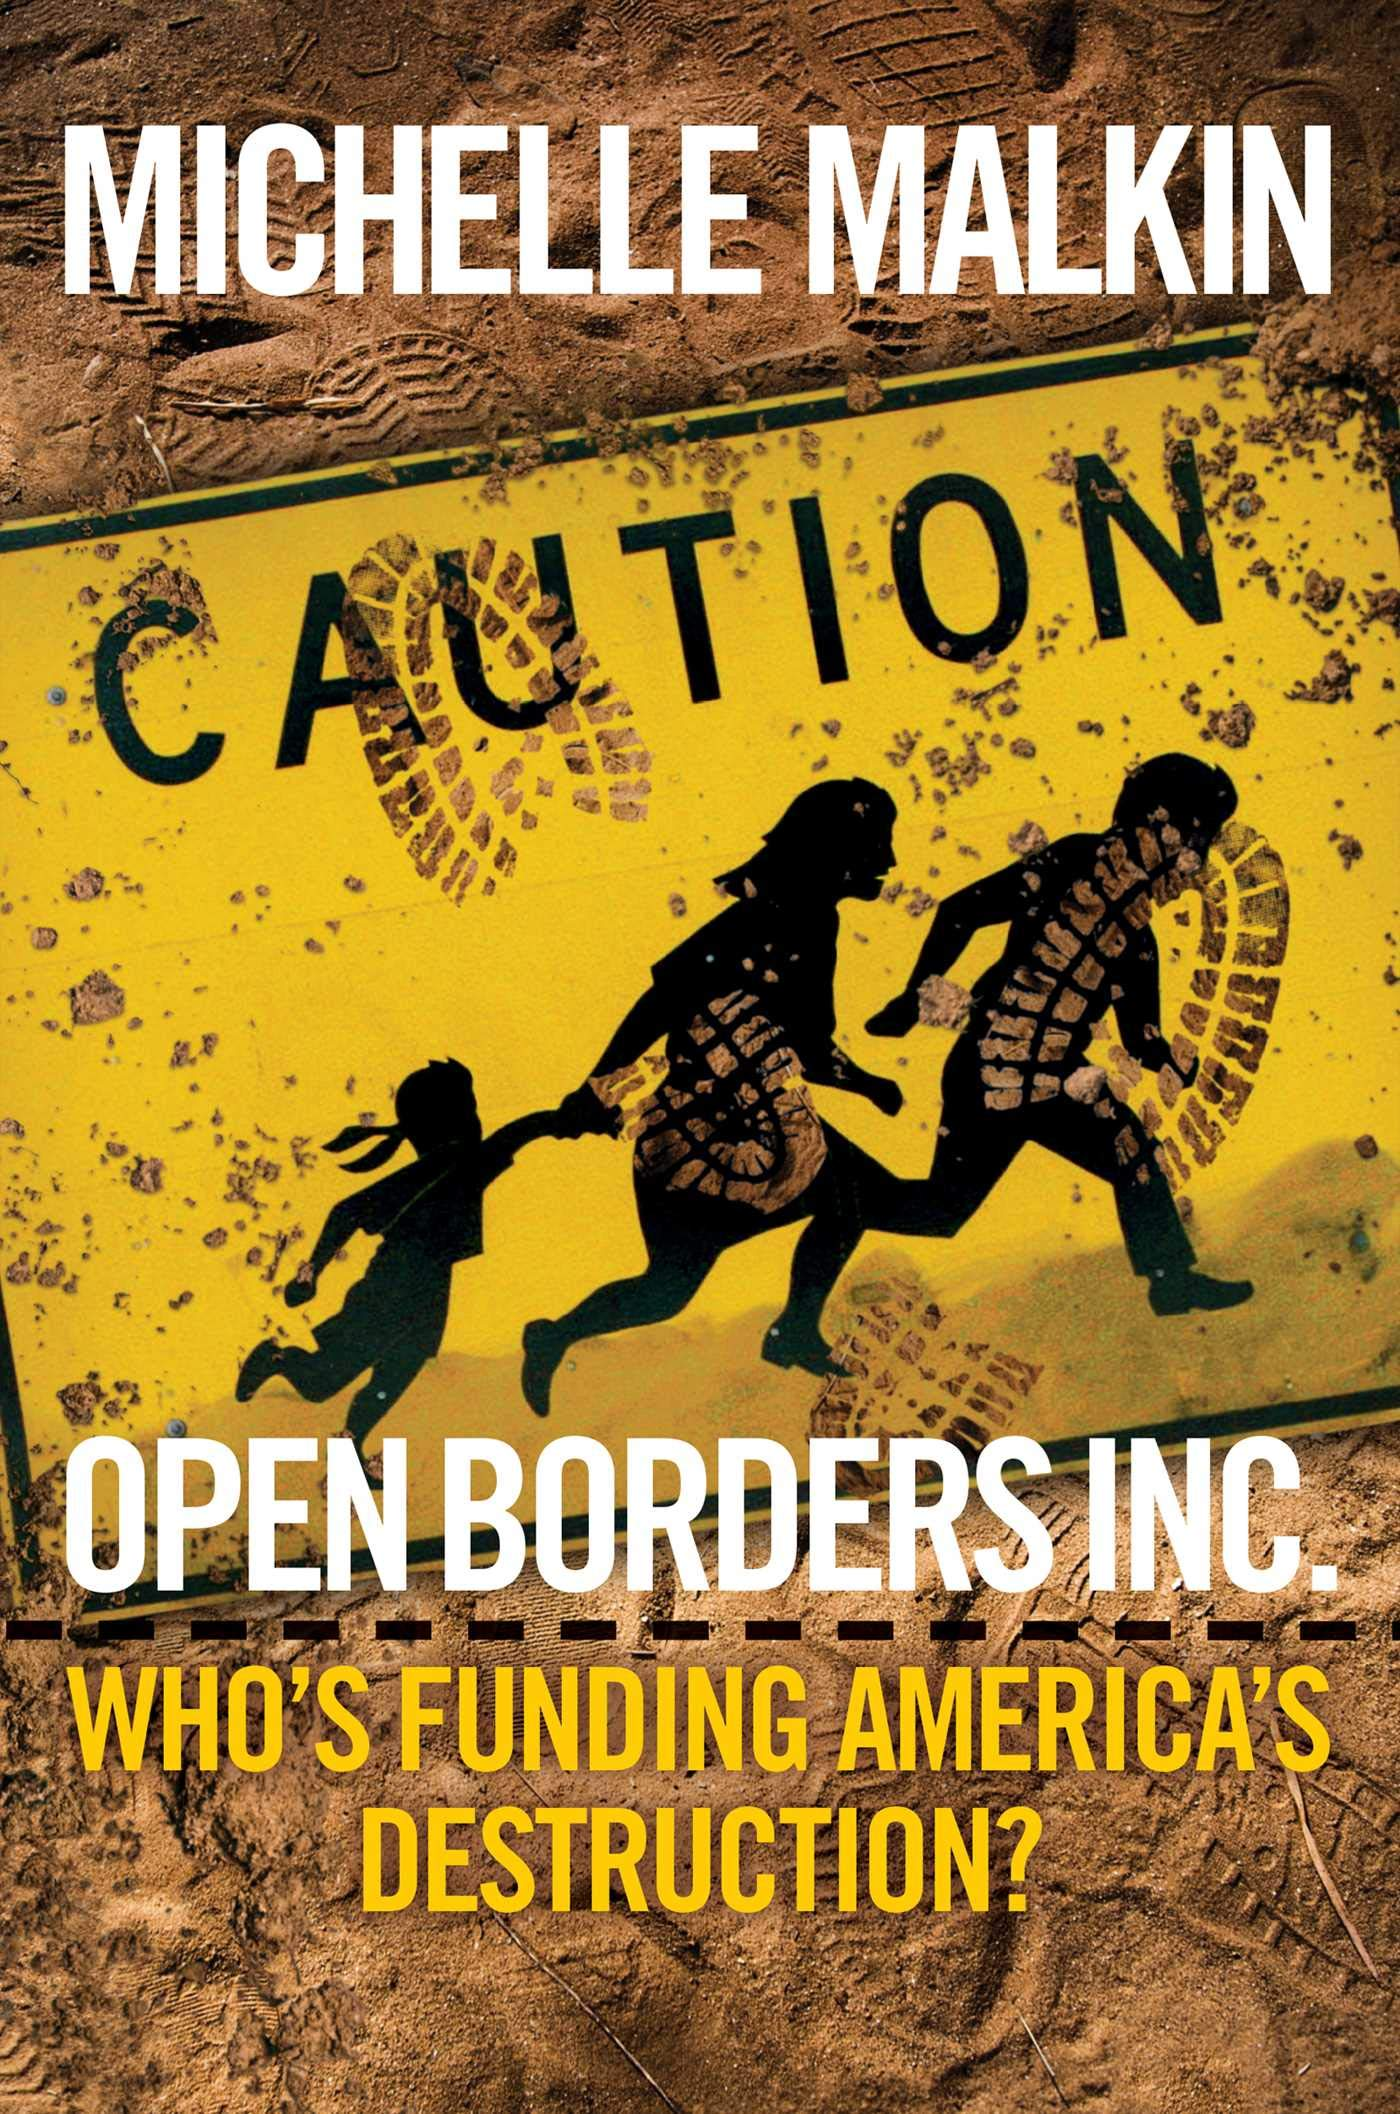 Open borders inc. cover